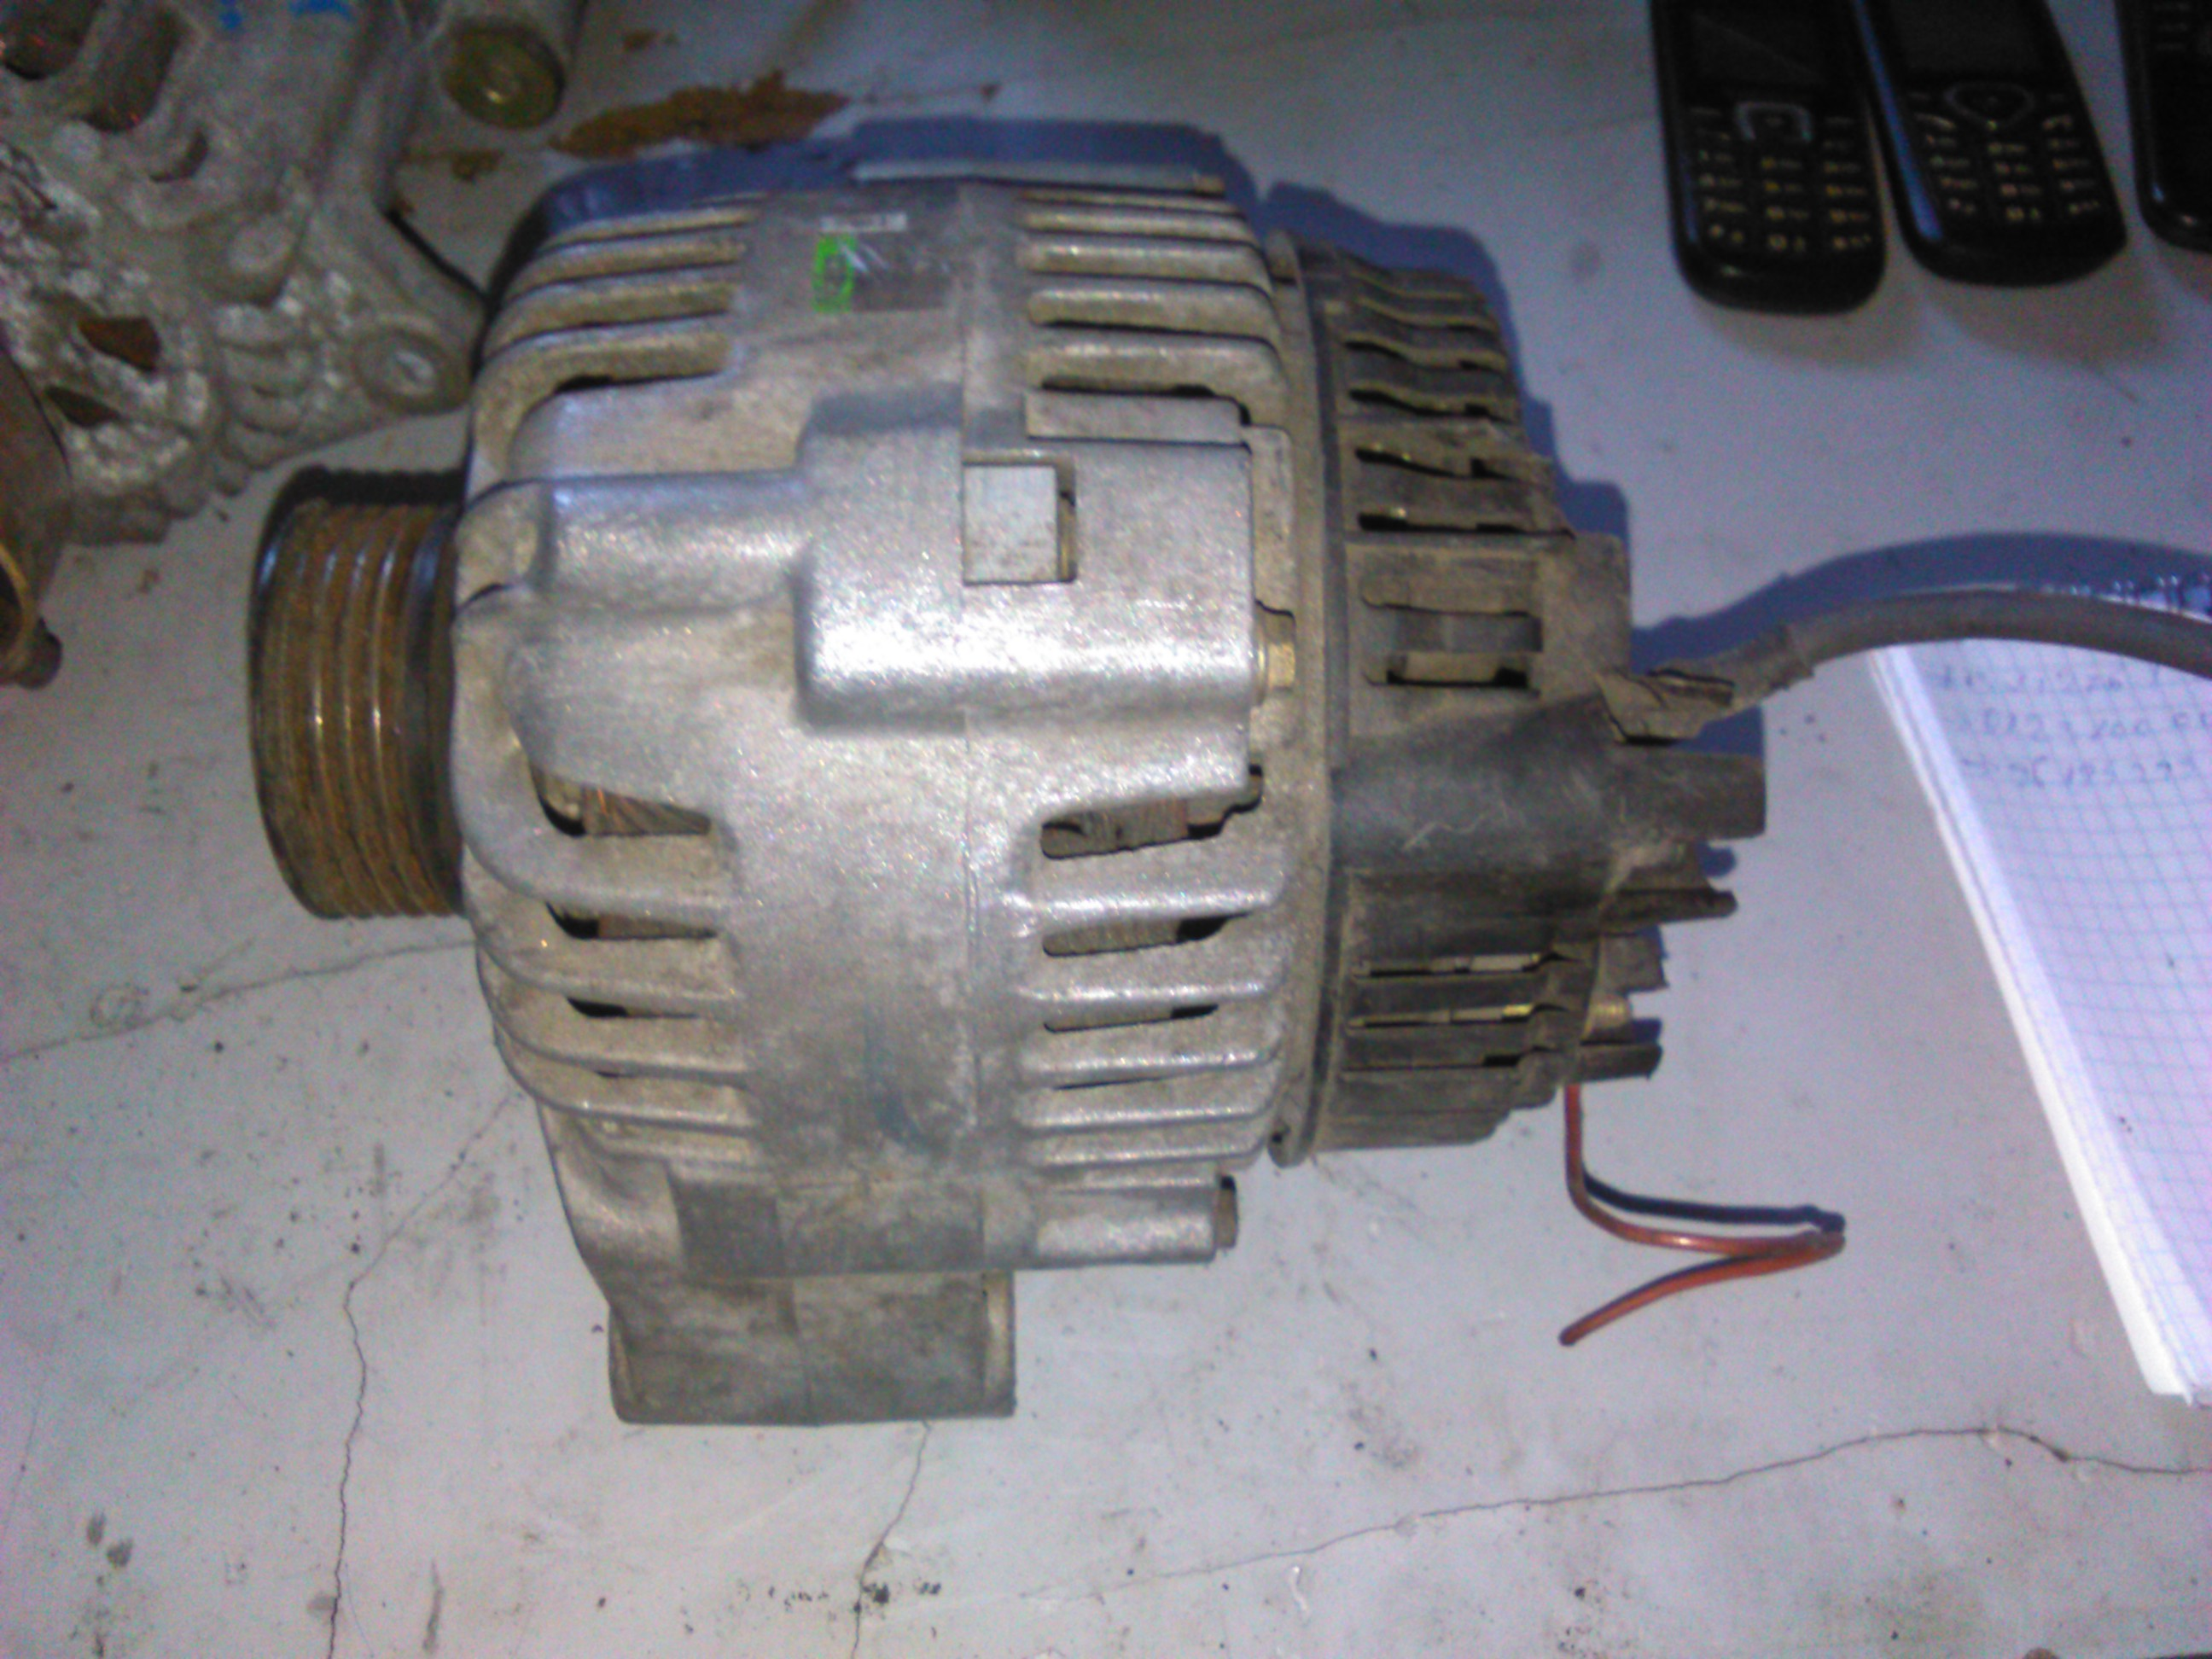 Alternator Peugeot 106 1.1, 1.4, 1.6, Citroen Saxo 1.1, 1.4, 1.6 cod 9619429380